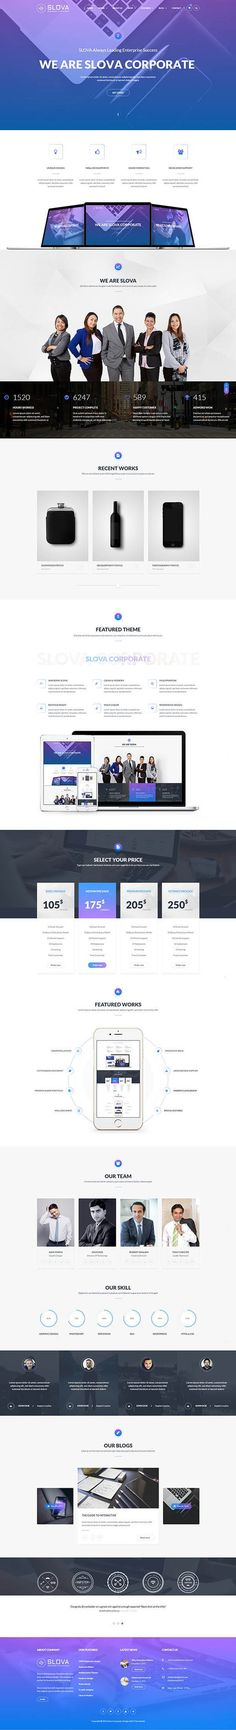 Slow - Business Responsive Wordpress Theme